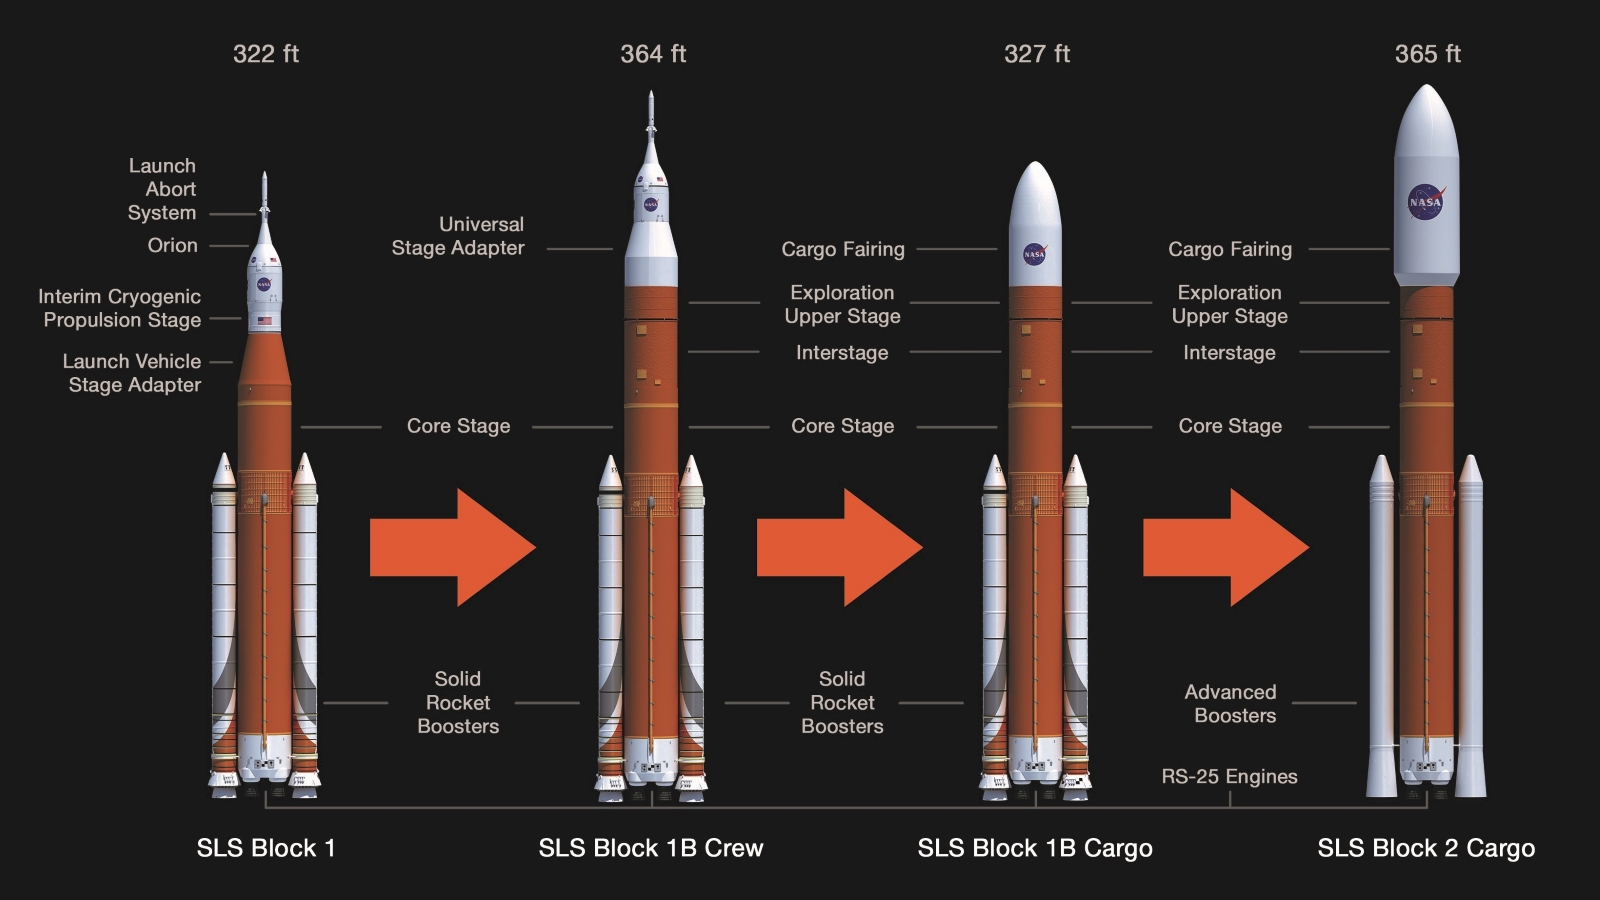 Universal Stage Adapter on SLS Block 1B Crew. Artist's rendering of NASA's Space Launch System (SLS) evolution: SLS Block 1 Crew, Block 1B Crew, Block 1B Cargo, and Block 2 Cargo.